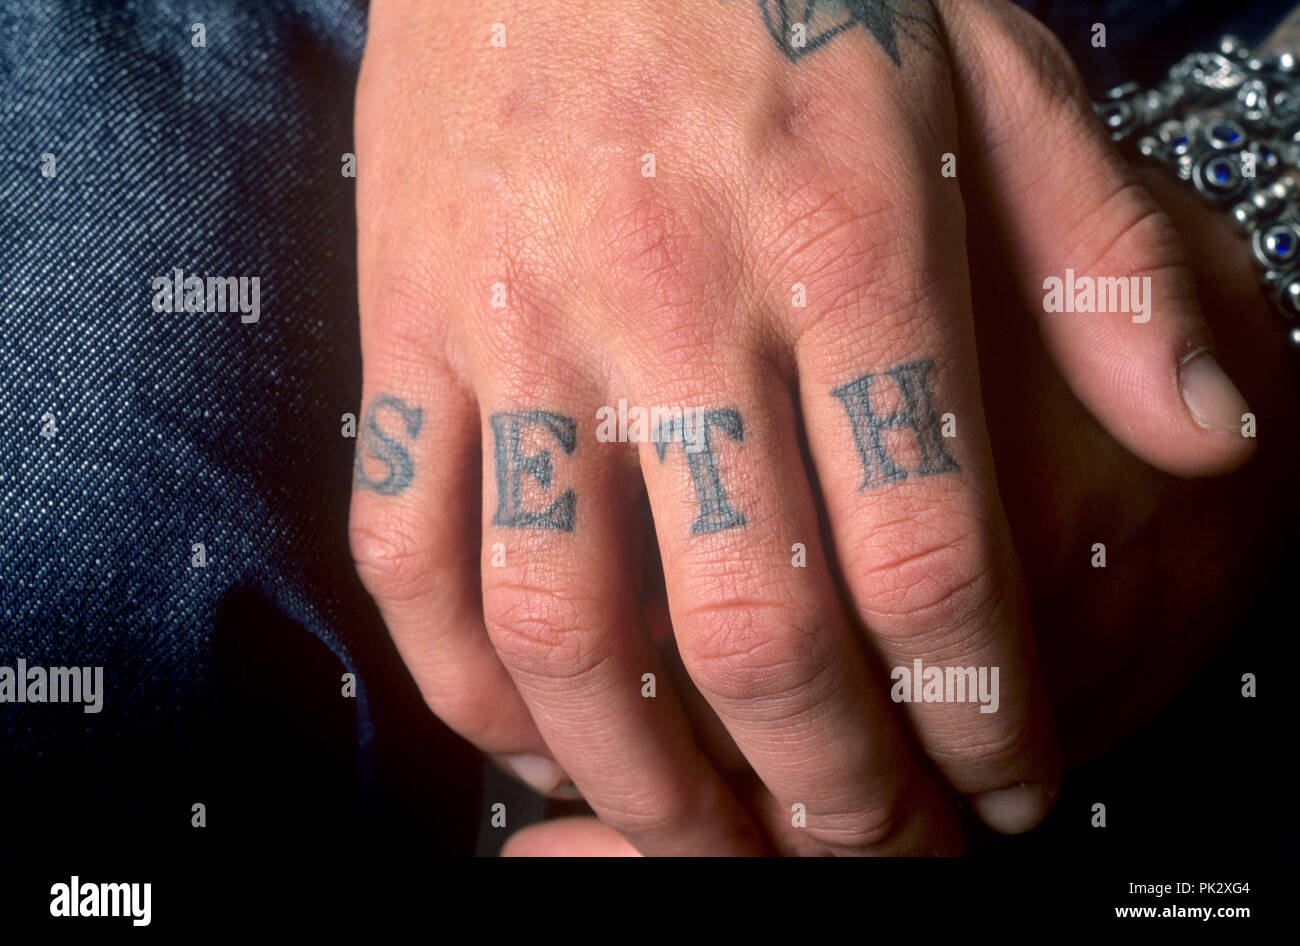 Shifty Shellshock (Crazy Town) on 19.03.2001 in Berlin. | usage worldwide - Stock Image